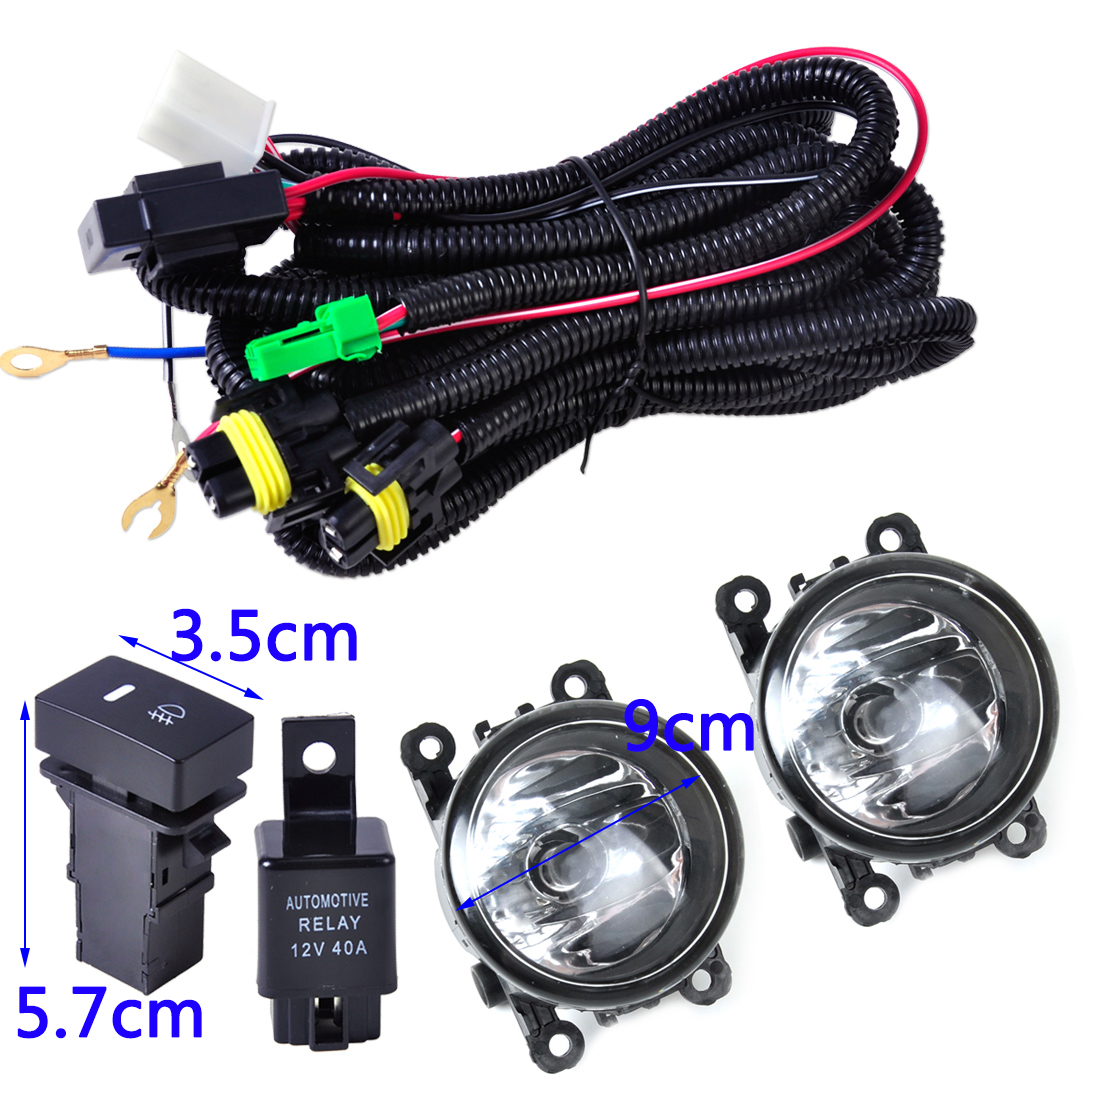 Beler Wiring Harness Sockets Switch + 2x H11 Fog Lights